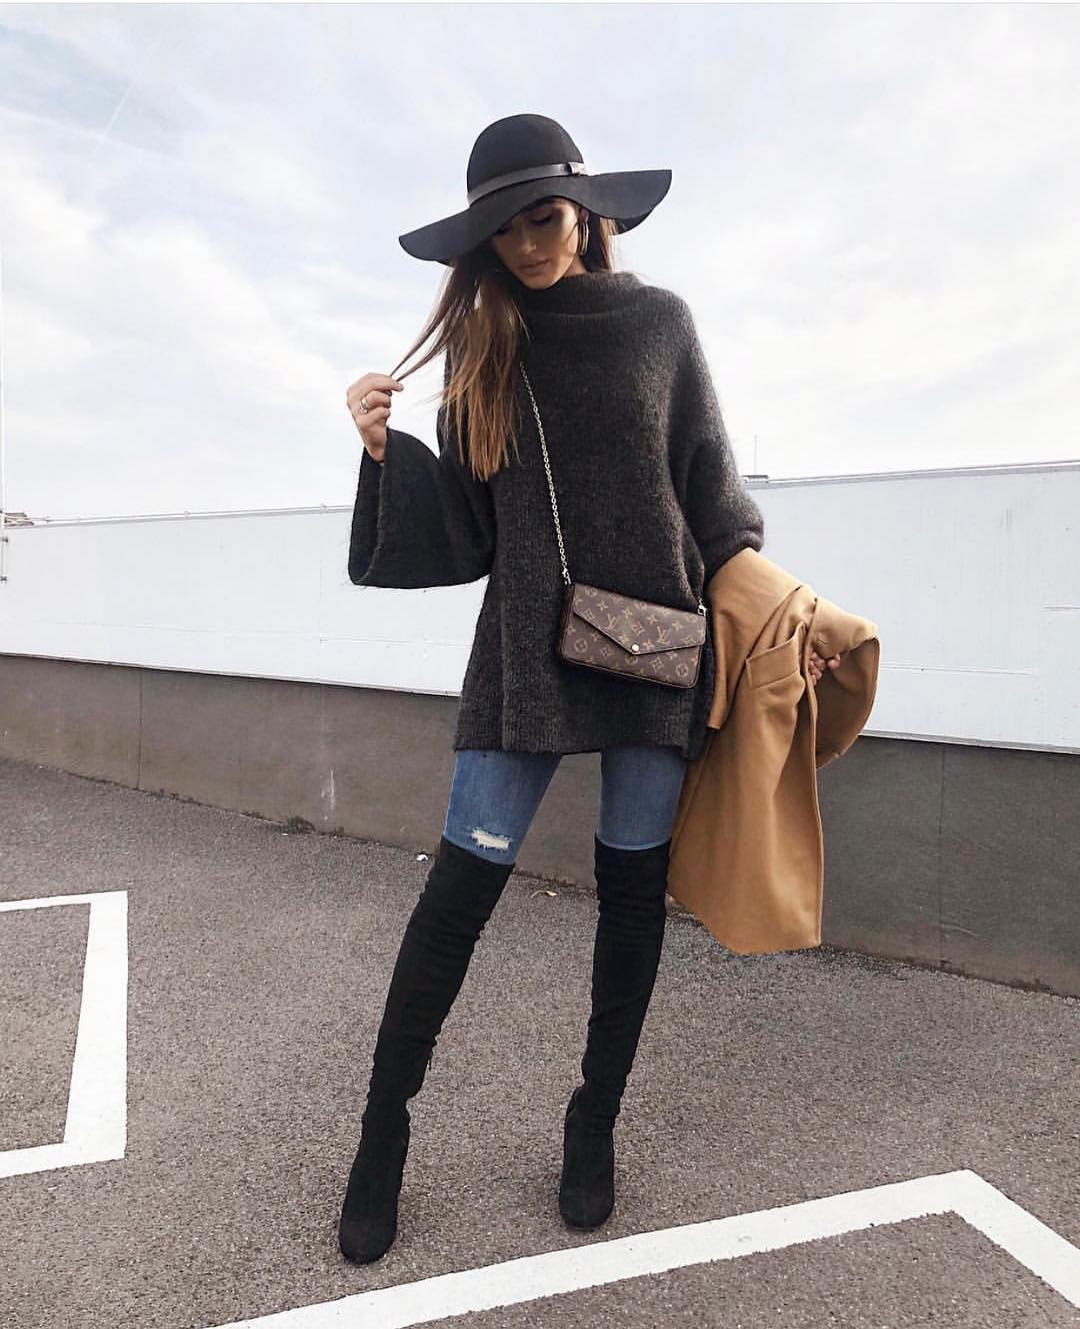 Boho Autumn OOTD: Floppy Hat, Oversized Sweater And OTK Boots 2020